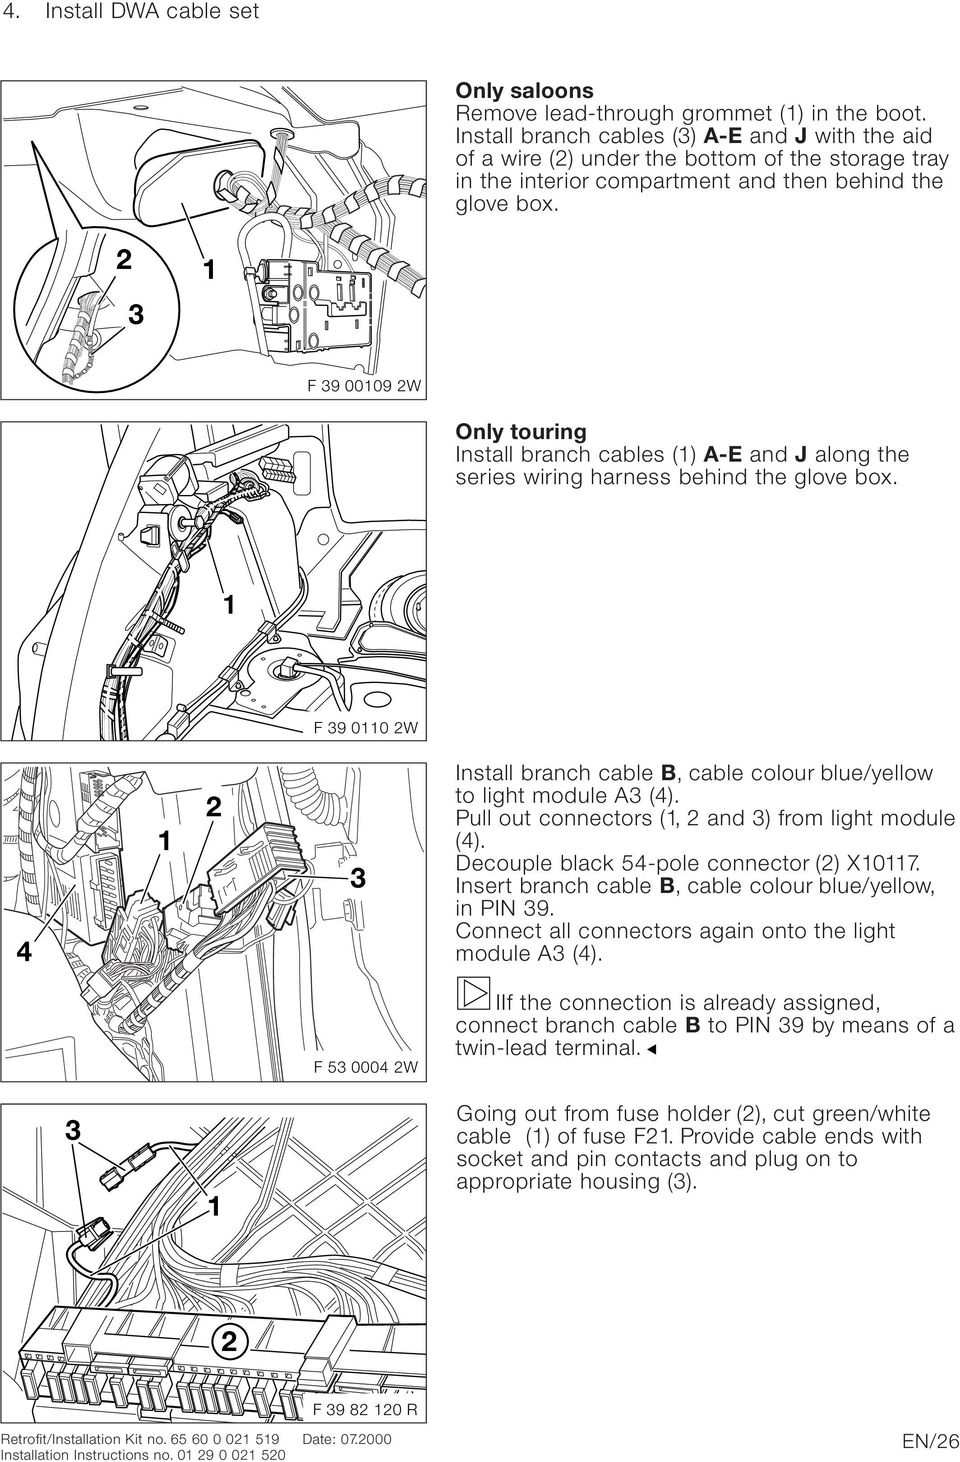 Bmw Parts And Accessories Installation Instructions Pdf 20032004 Toyota Sequoia Trailer Wiring Harness 4 Pin Flat Style F 9 0009 W Only Touring Install Branch Cables A E J Along The